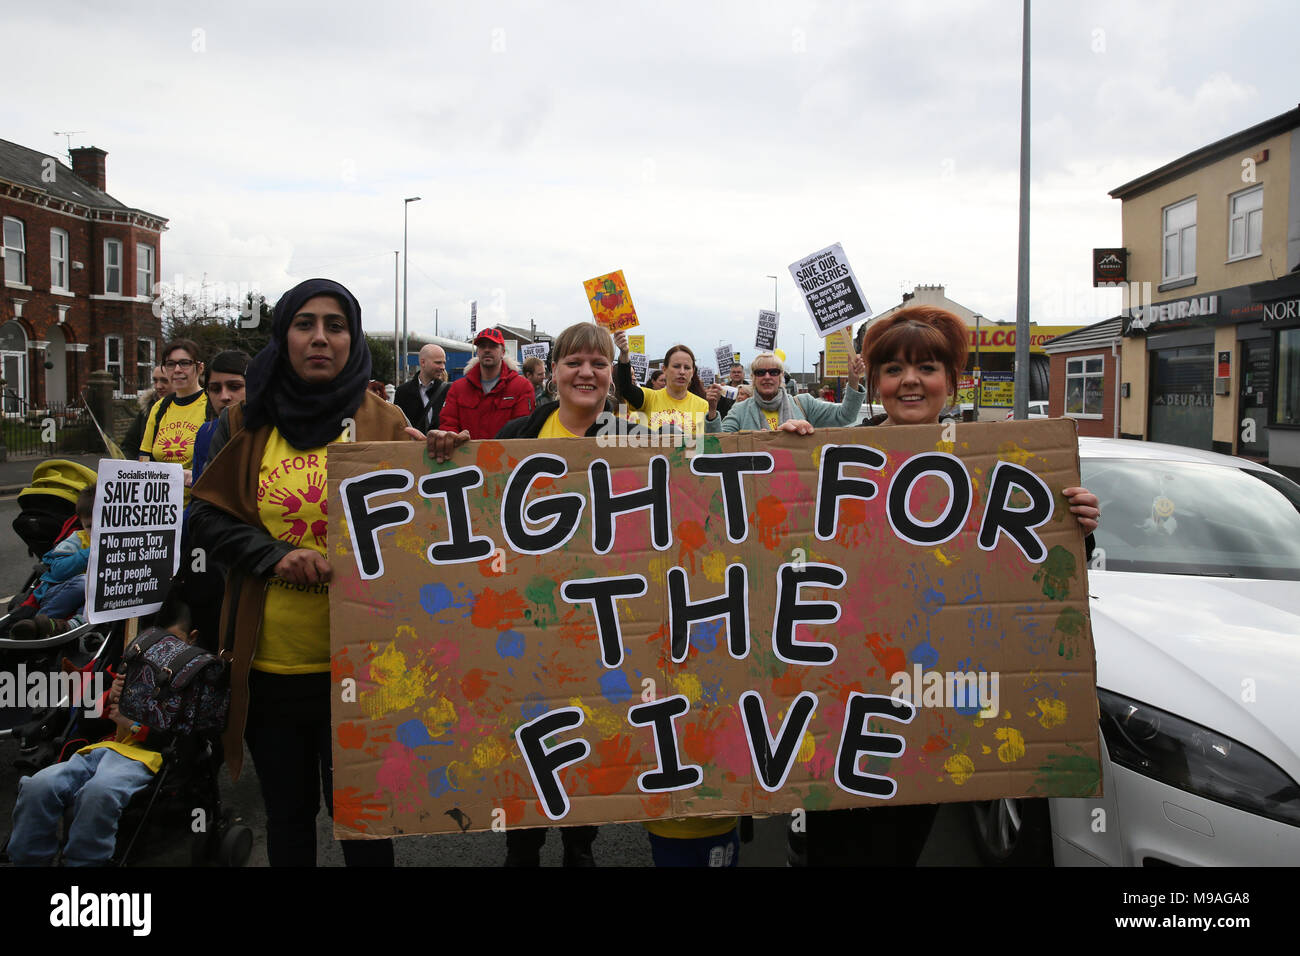 Salford, UK. 24th March, 2018. Families march to save Salford local authority nurseries which had been under threat of closure.  The Mayor has confirmed the status of the nurseries for the next 12 months and that he has agreed to put another £1.5m of Council money into them for that period Swinton, Salford, 24th March, 2018 (C)Barbara Cook/Alamy Live News Stock Photo